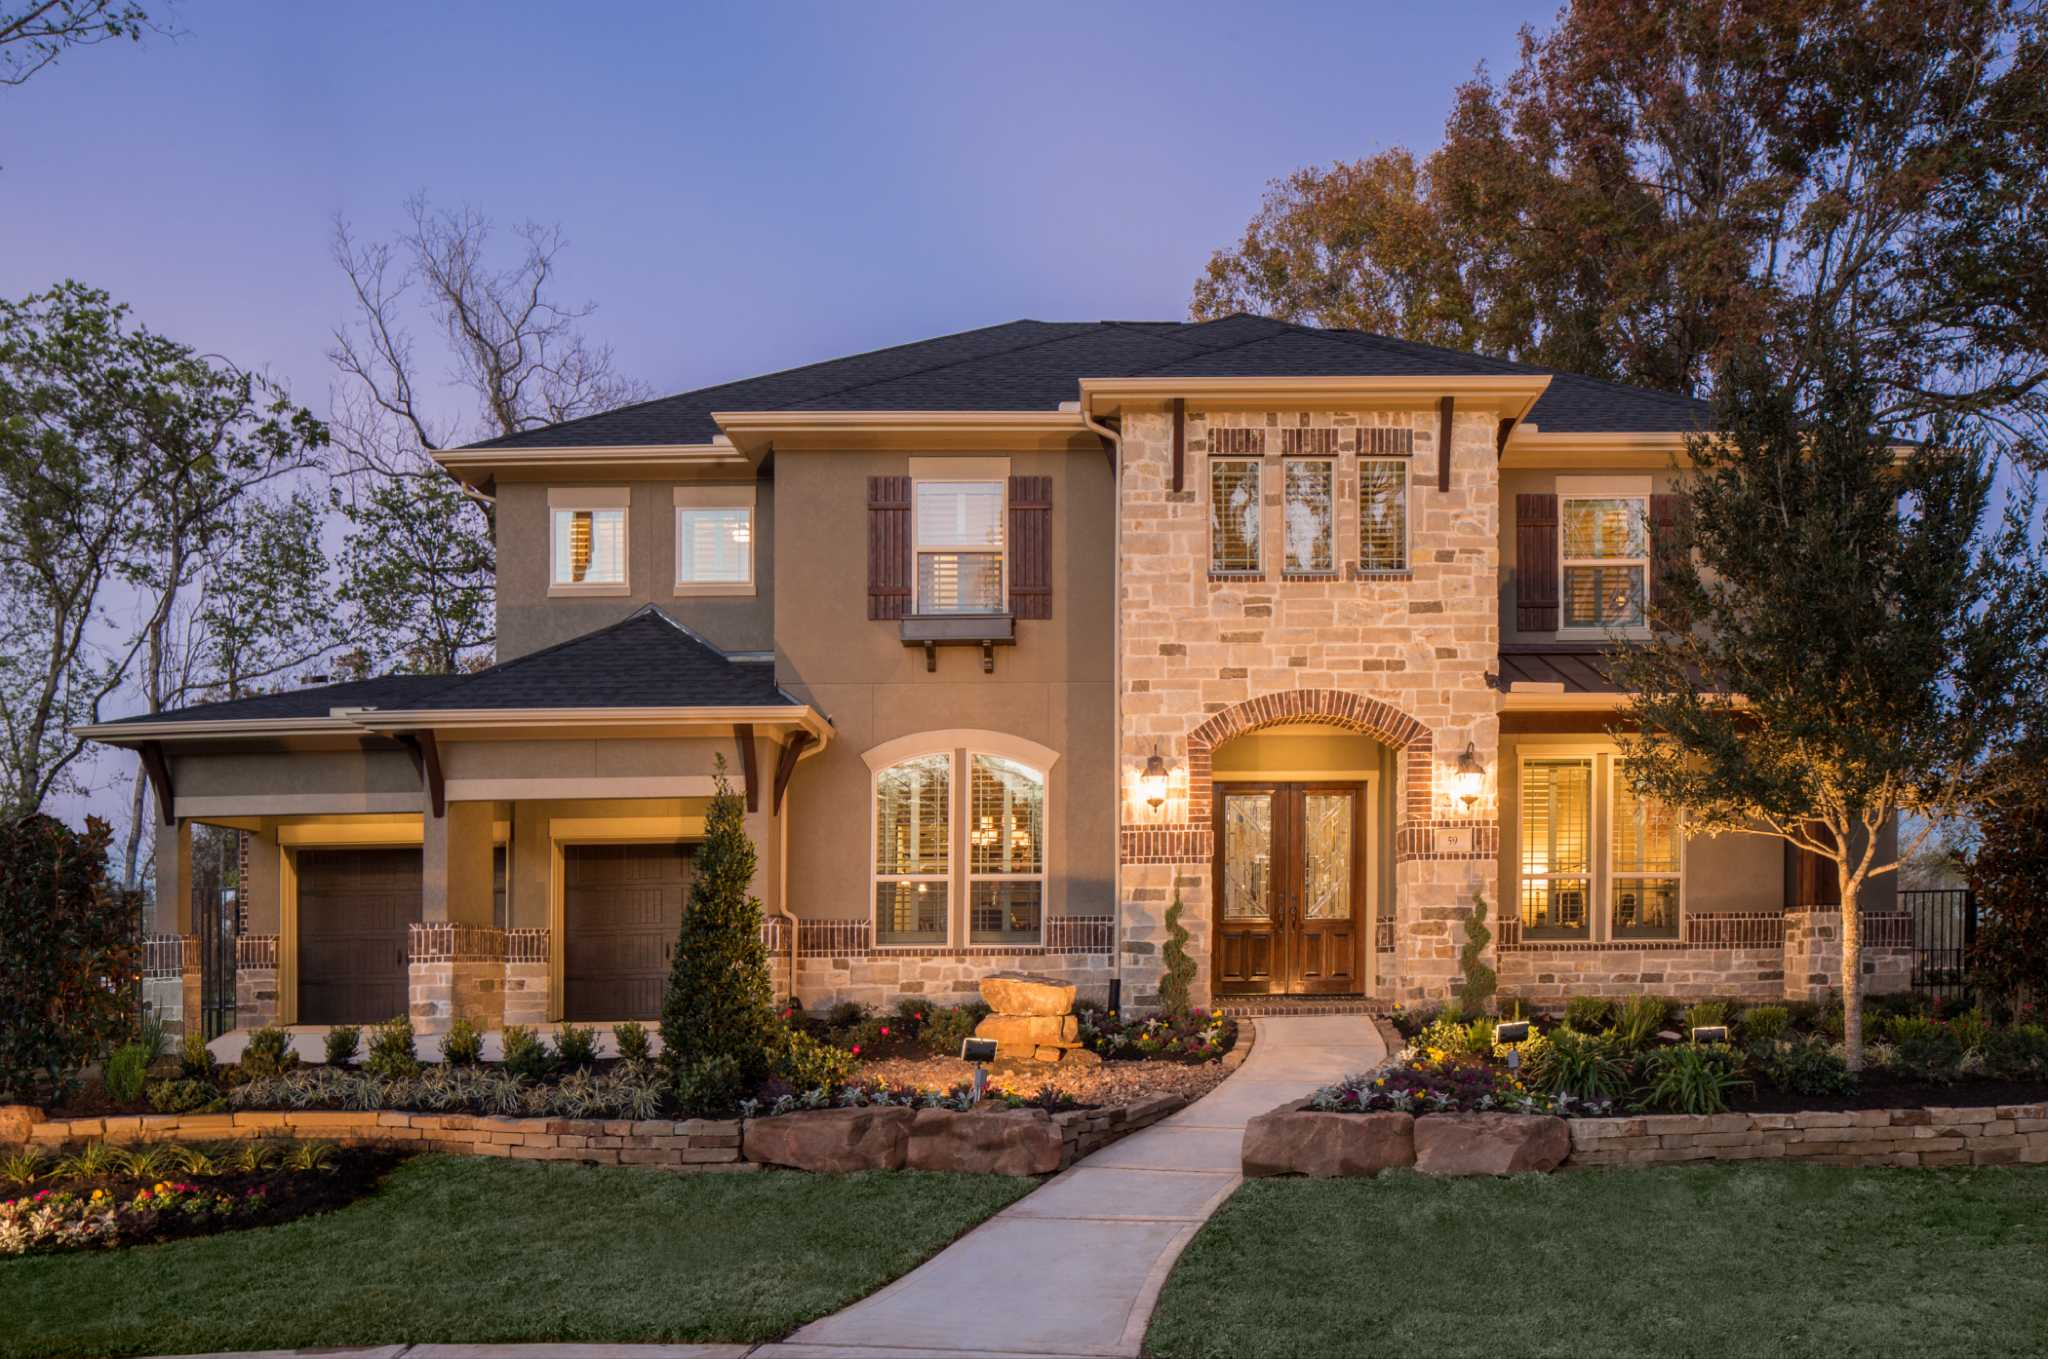 Houston model homes for sale